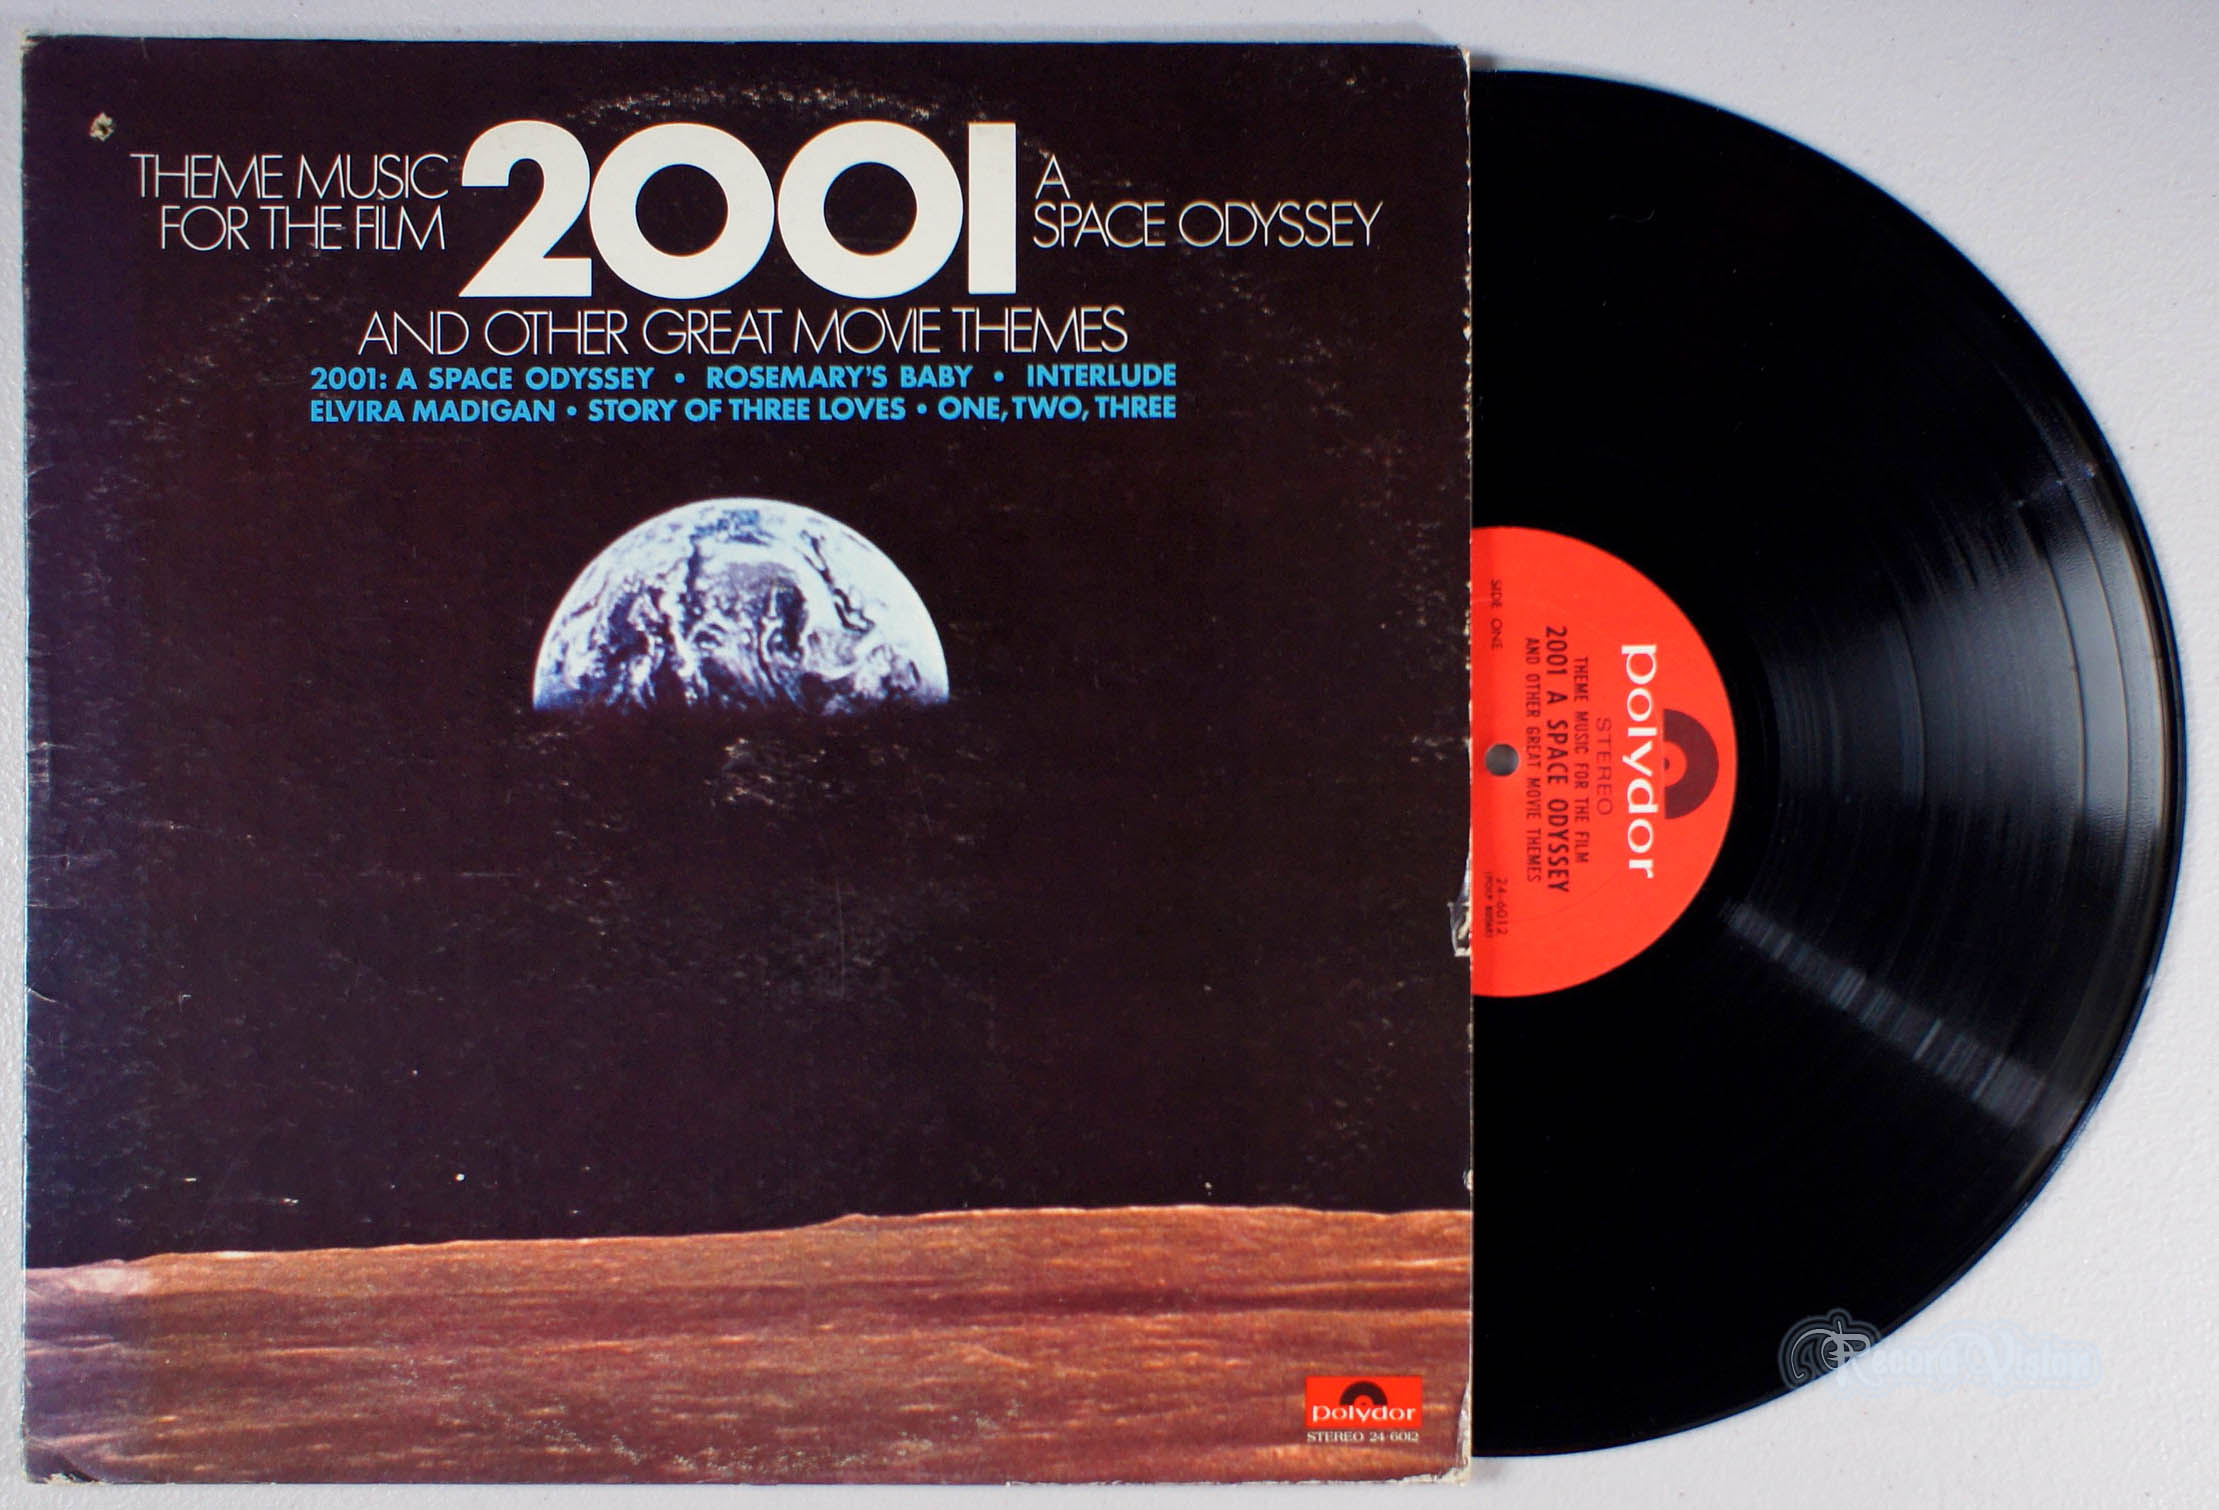 ASSORTED (SOUNDTRACK) - Theme Music for the Film 2001 A Space Odyssey - 33T